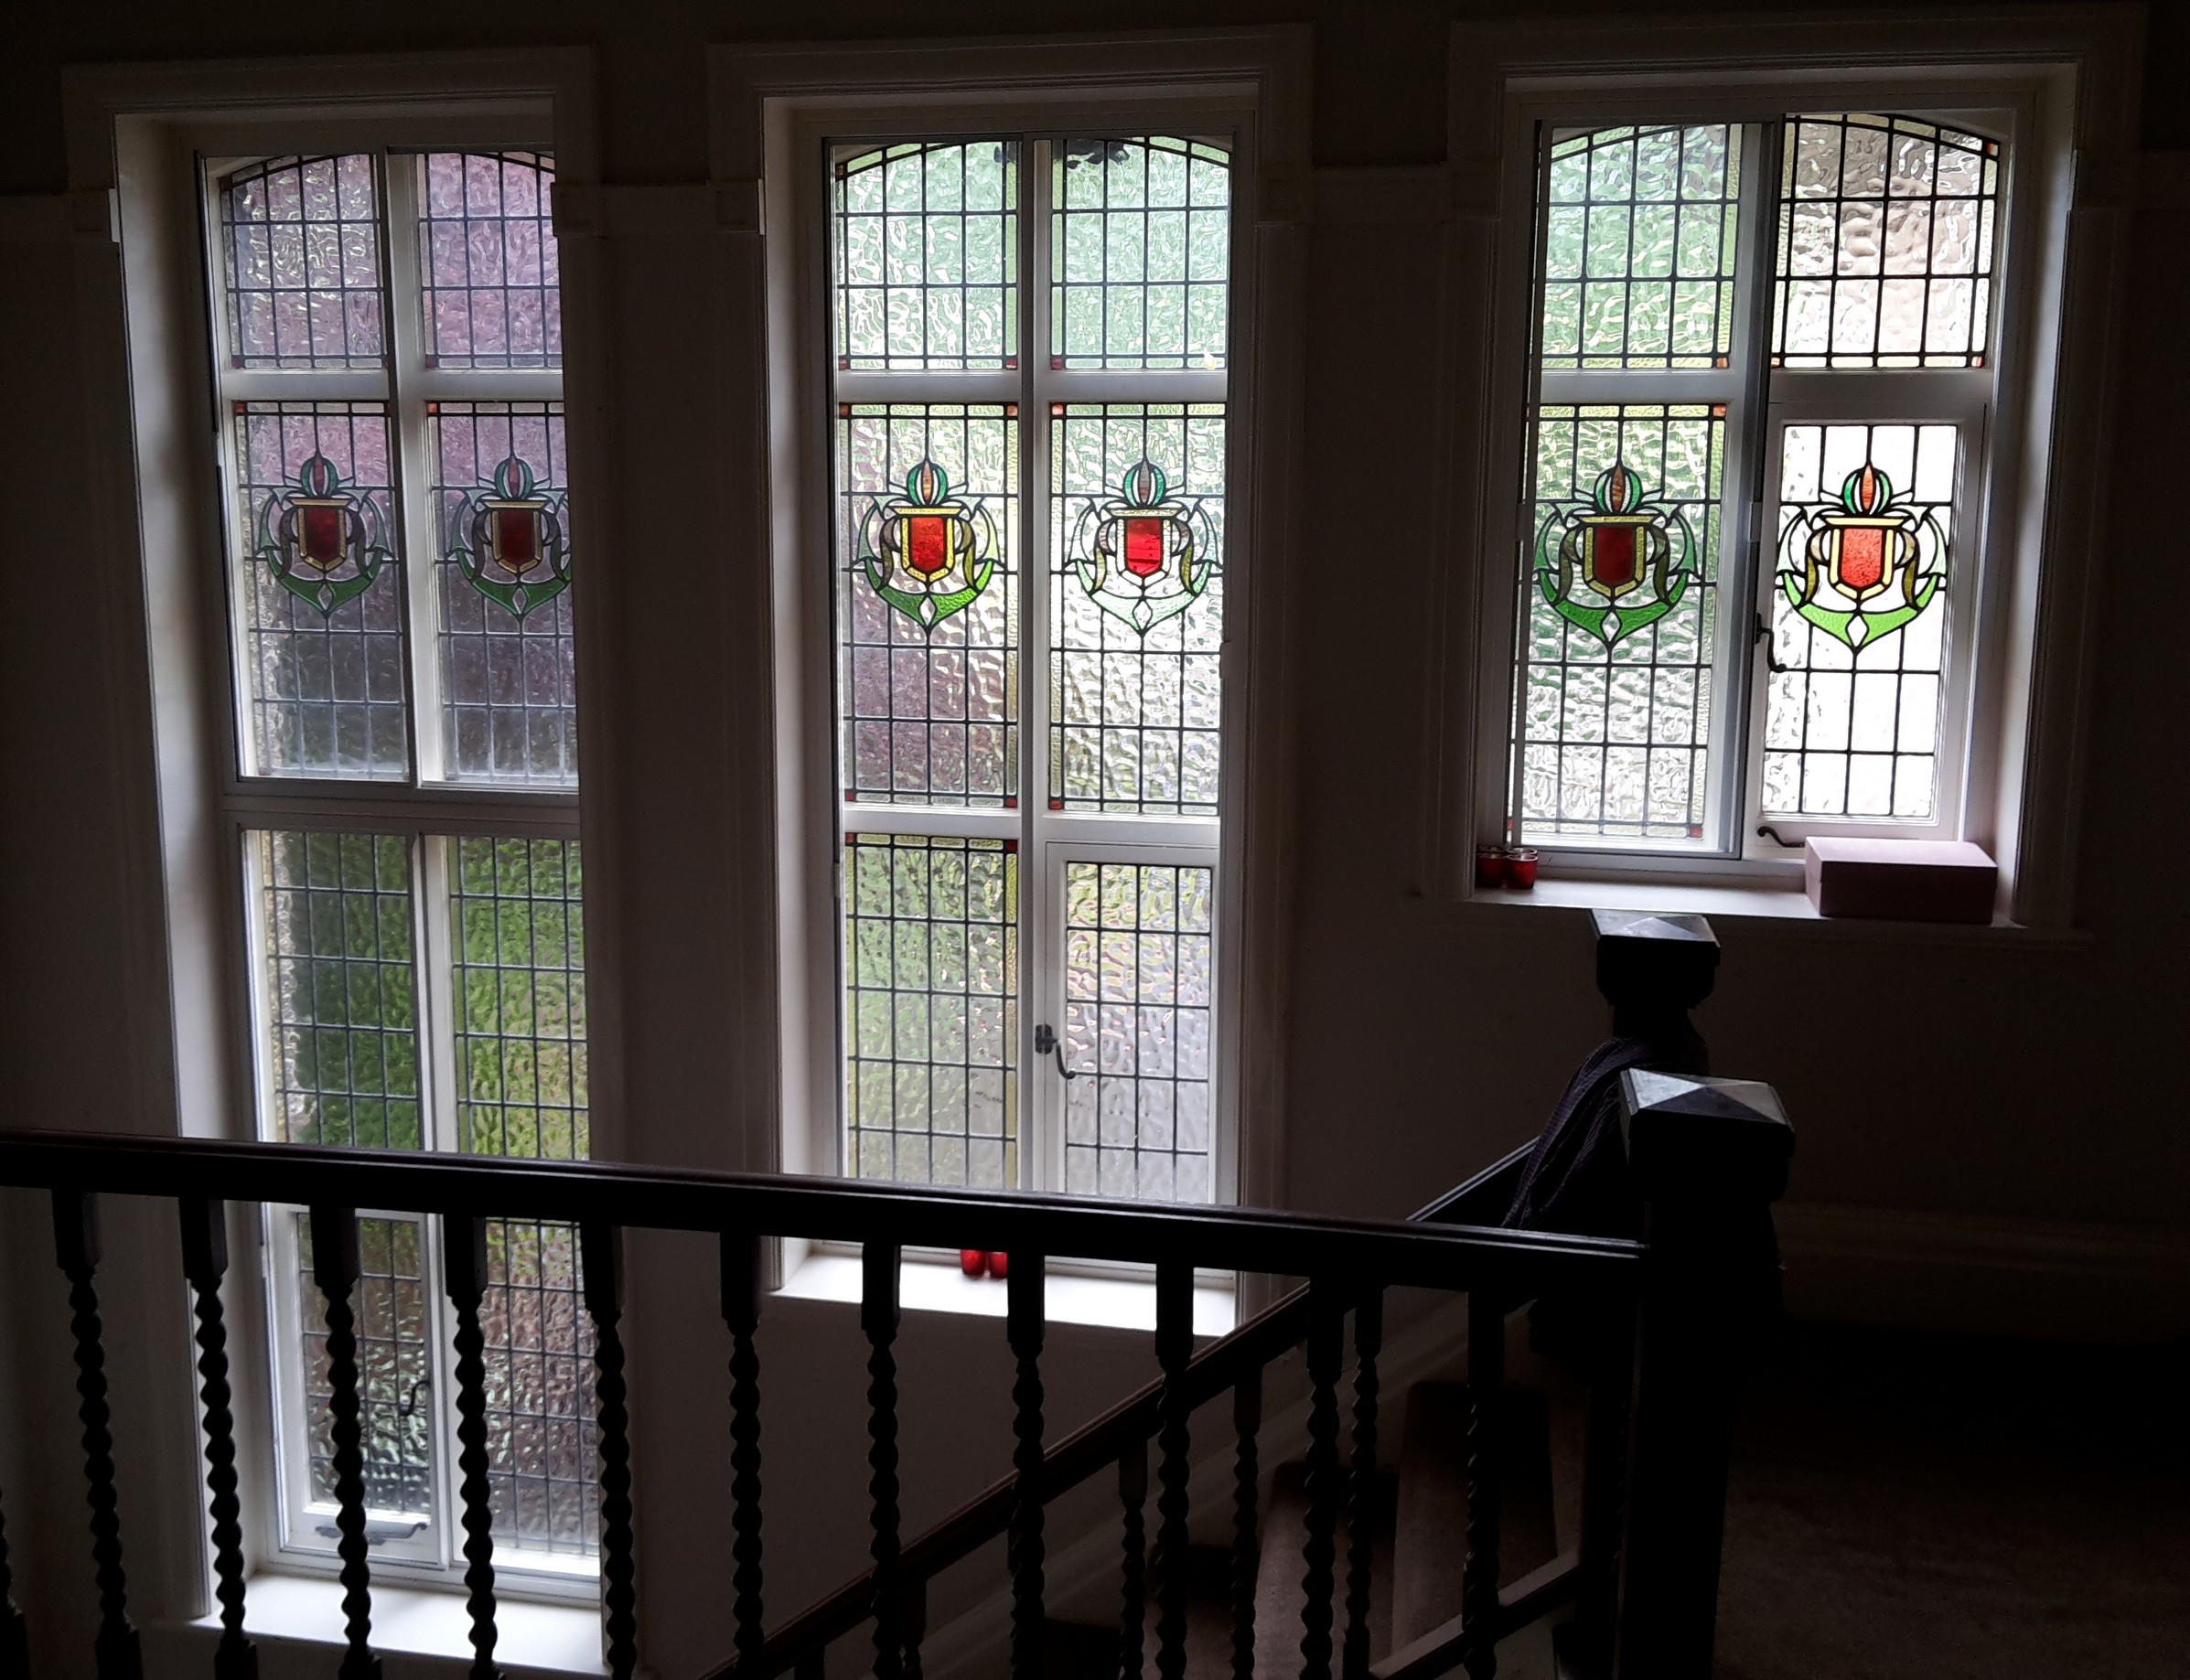 1920 s staircase window stained glass artists designers for 1920s window